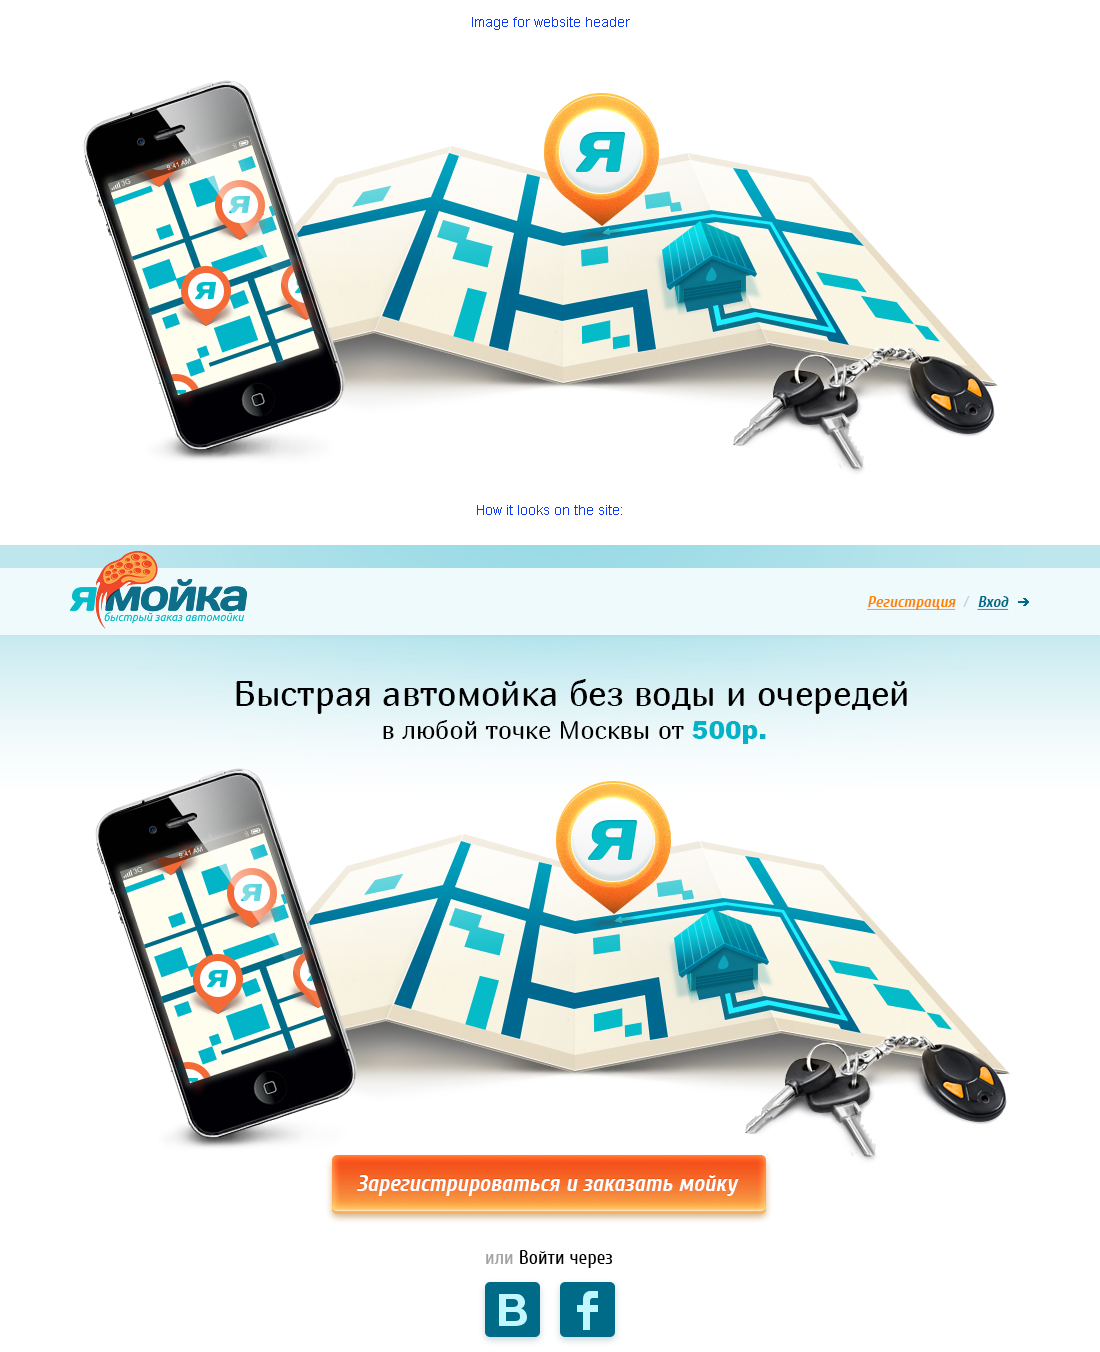 Website header image for Yamoika.ru